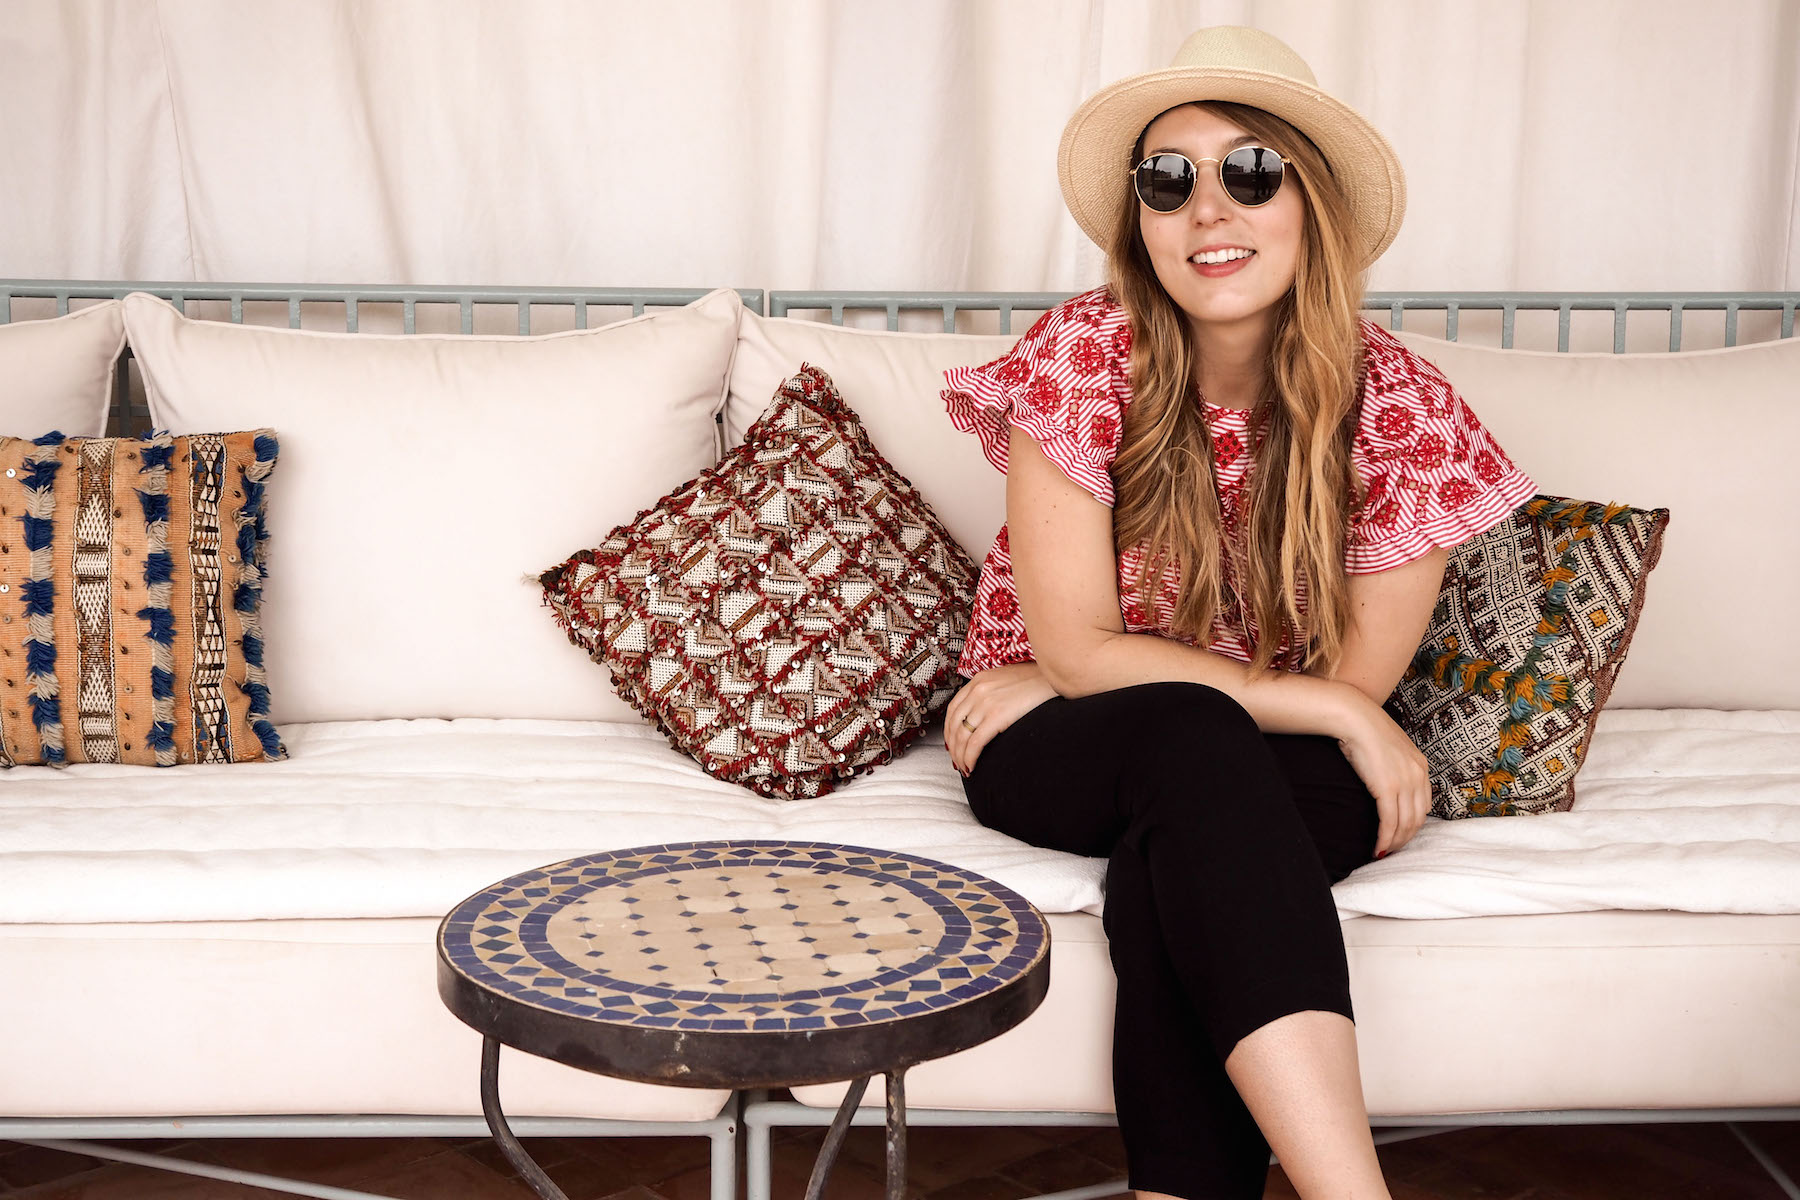 Eire Pollard in a Zara red top, Hush black cottons trousers, Ray Ban sunglasses and a hat on top of the Riad Kniza, Marrakech